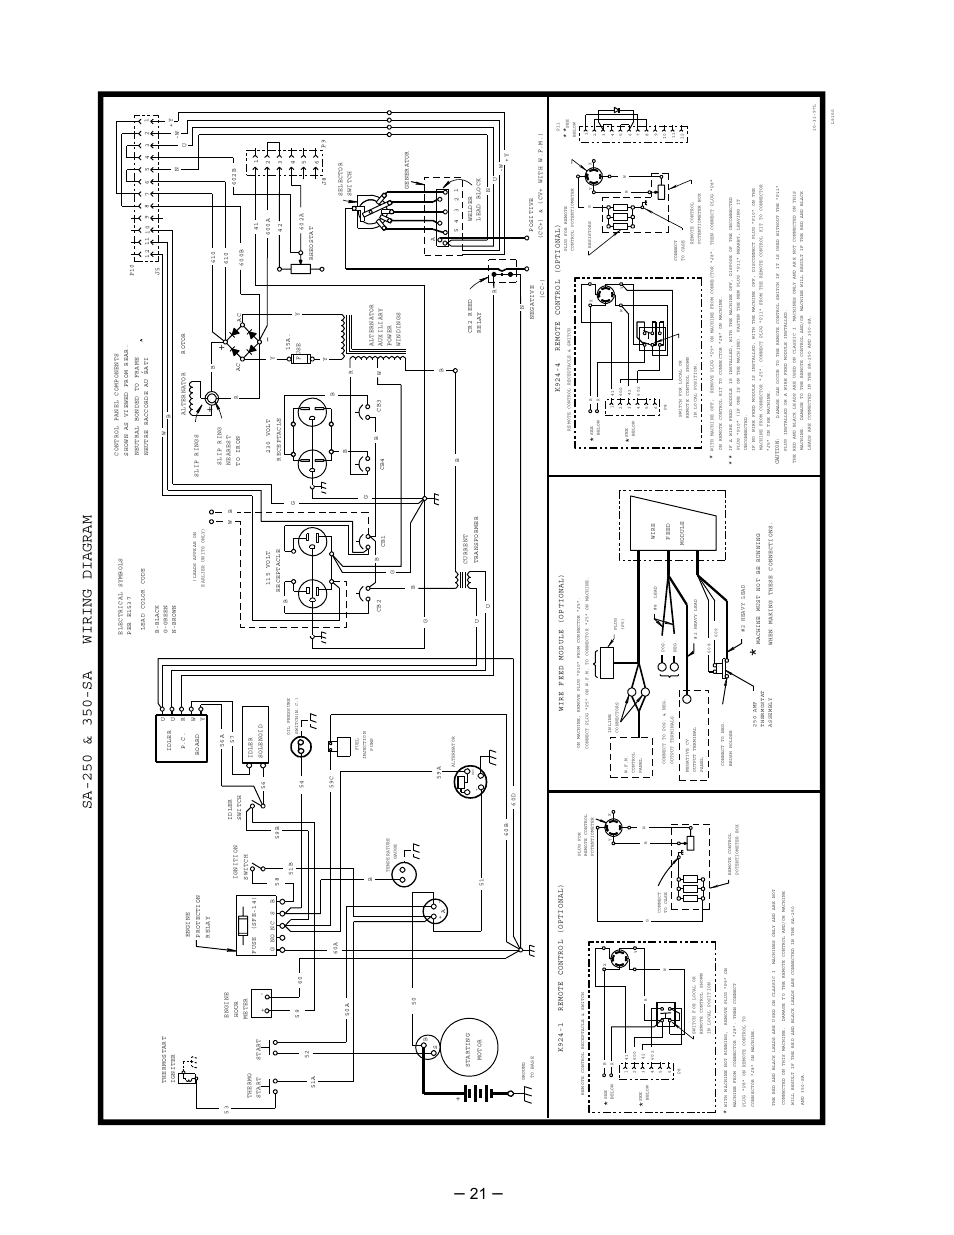 lincoln electric perkins sa 250 page22?resize=665%2C861 weldanpower 225 lincoln welder wiring diagram lincoln welder lincoln weldanpower g8000 wiring diagrams at gsmx.co